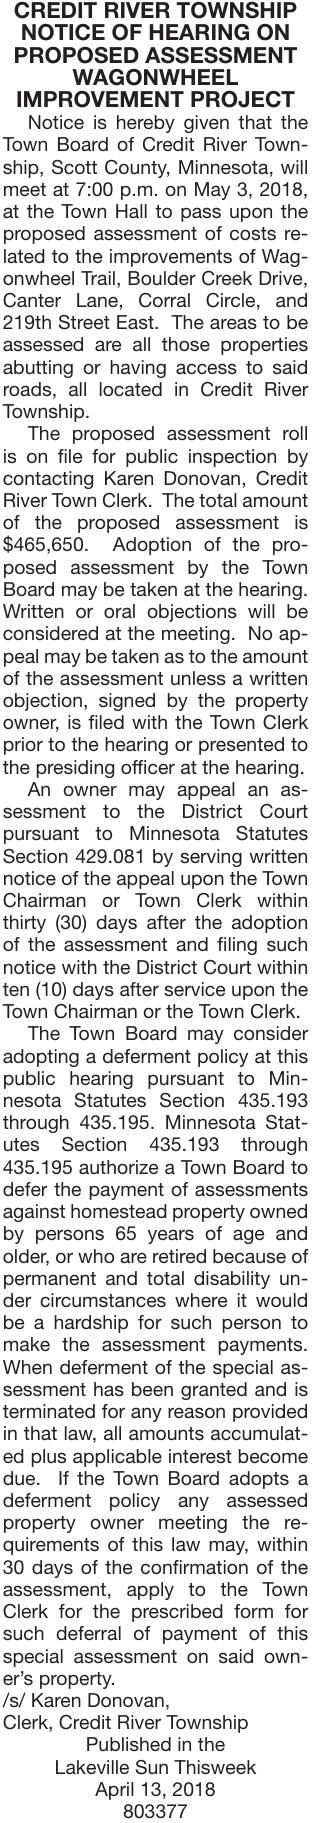 Proposed Assessment Wagon Wheel Notice Of Public Hearing